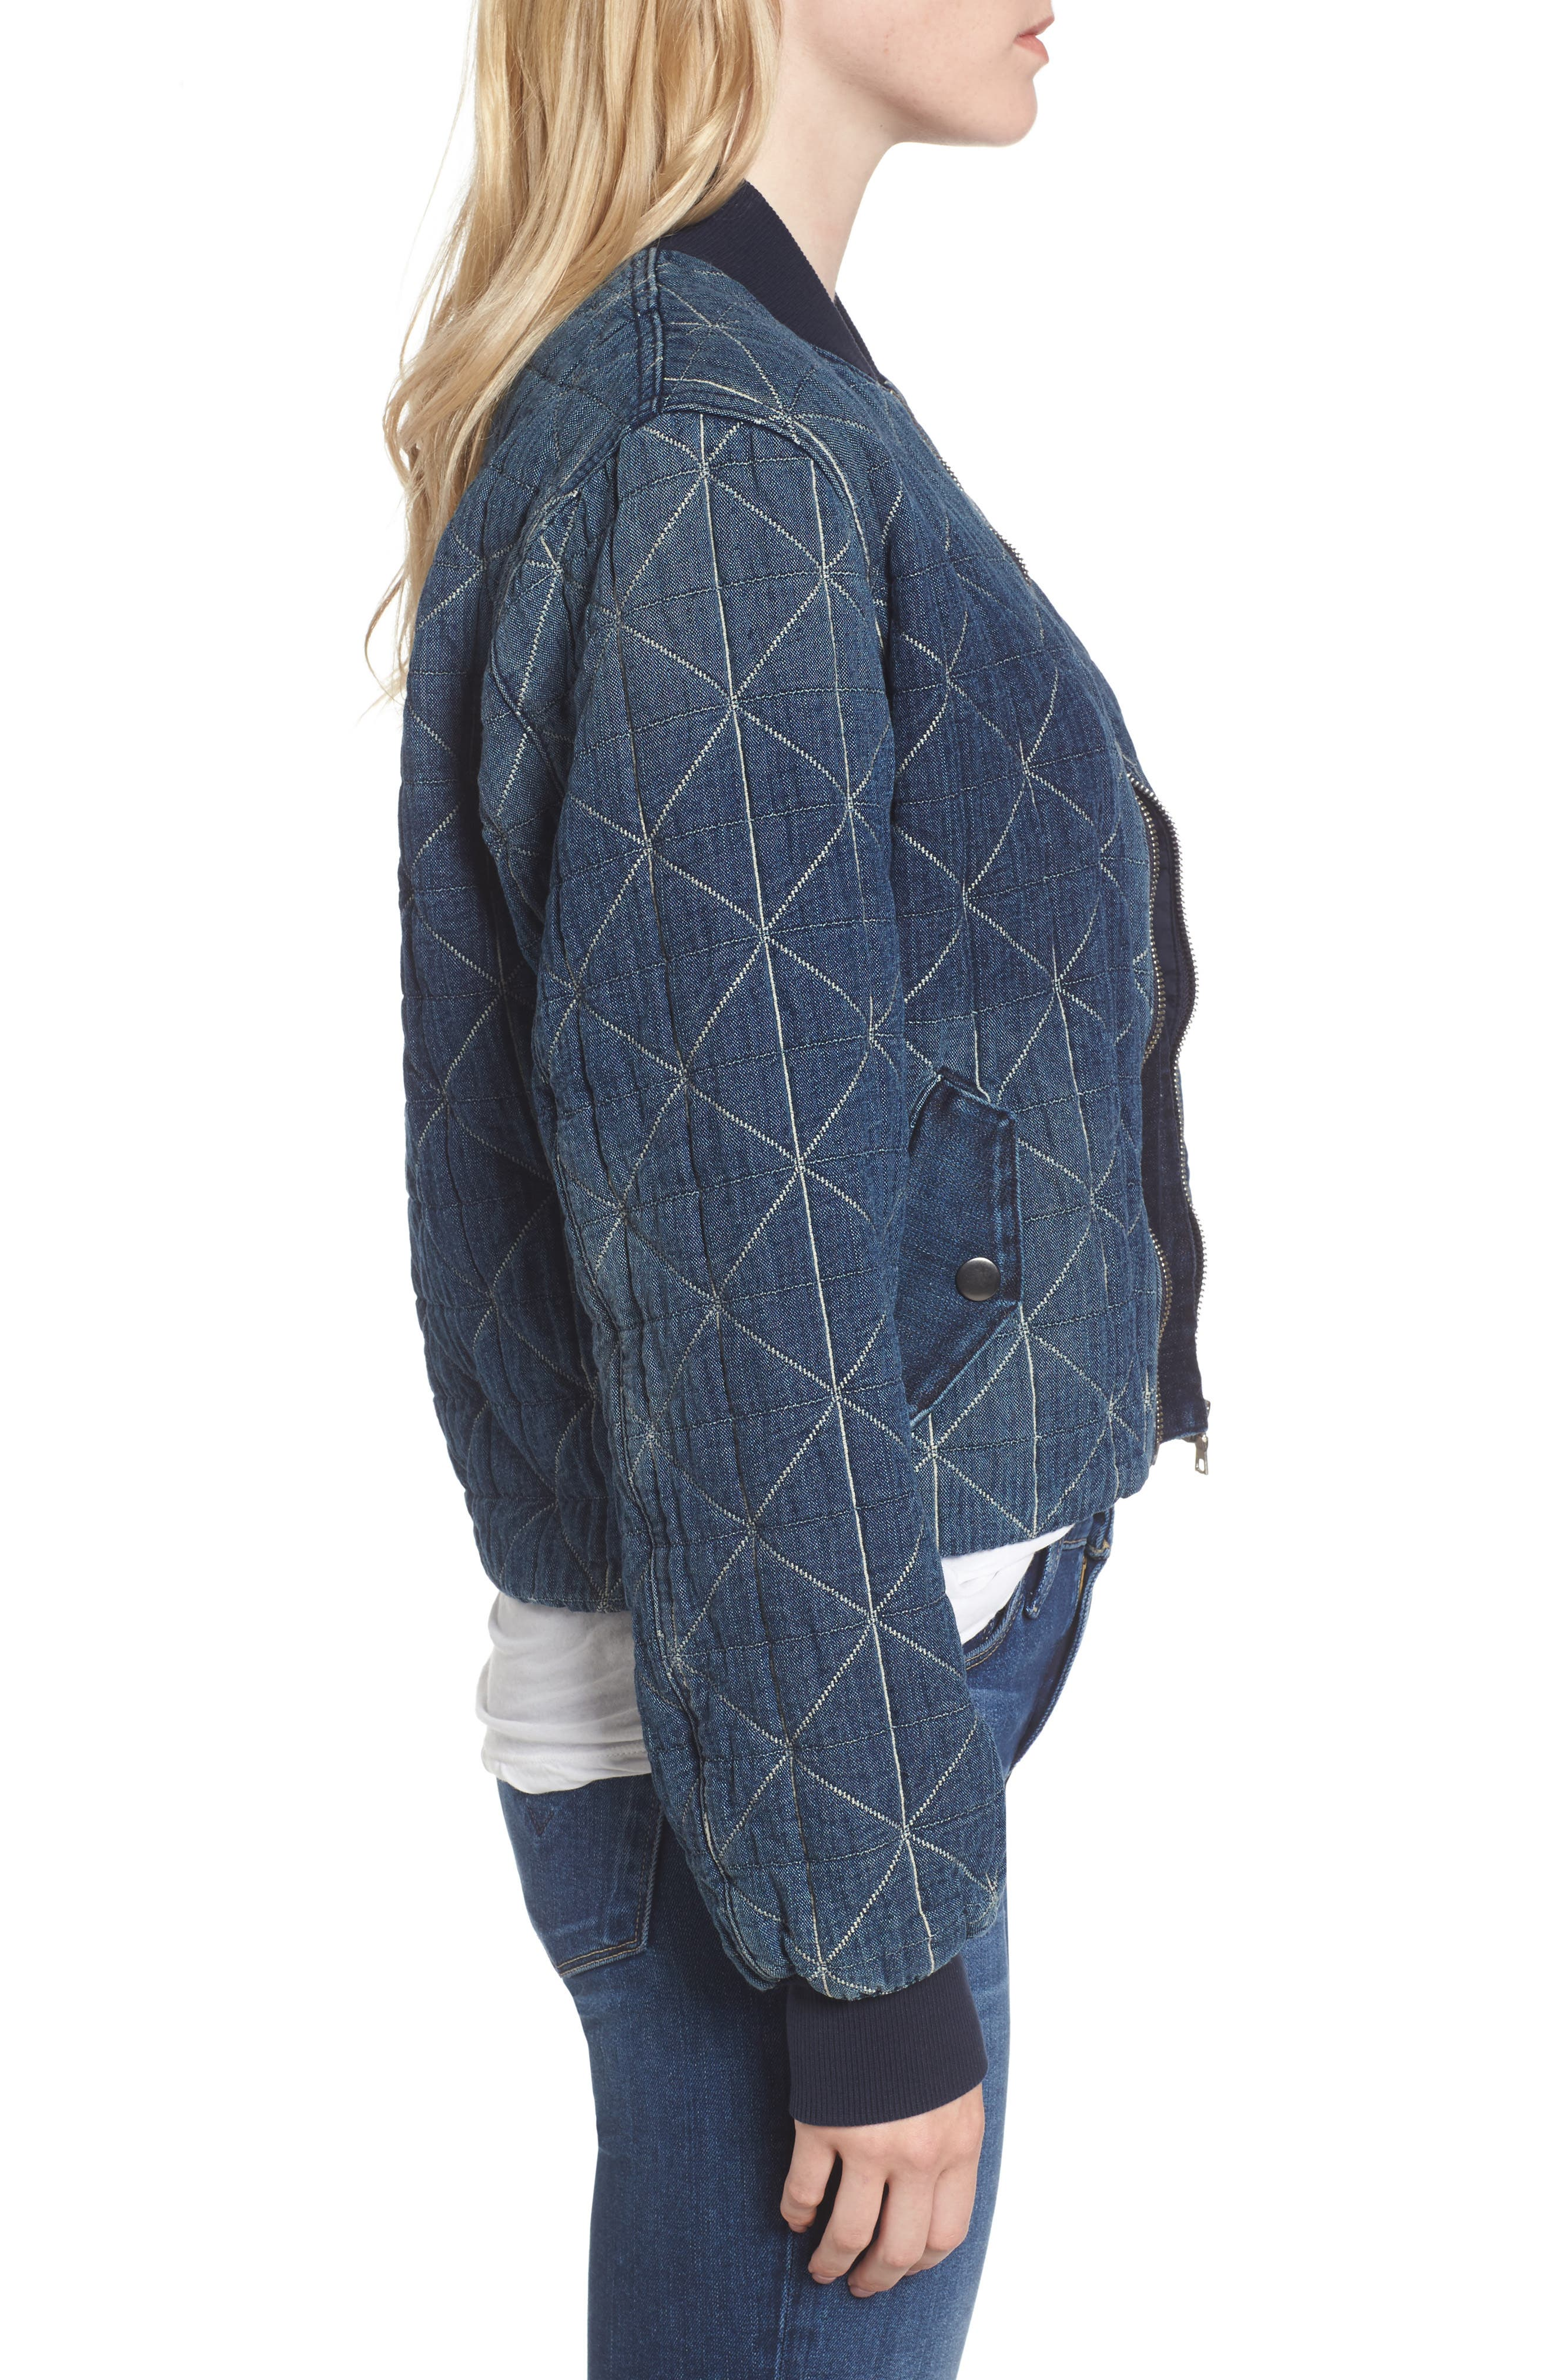 Gene Quilted Bomber Jacket,                             Alternate thumbnail 3, color,                             420